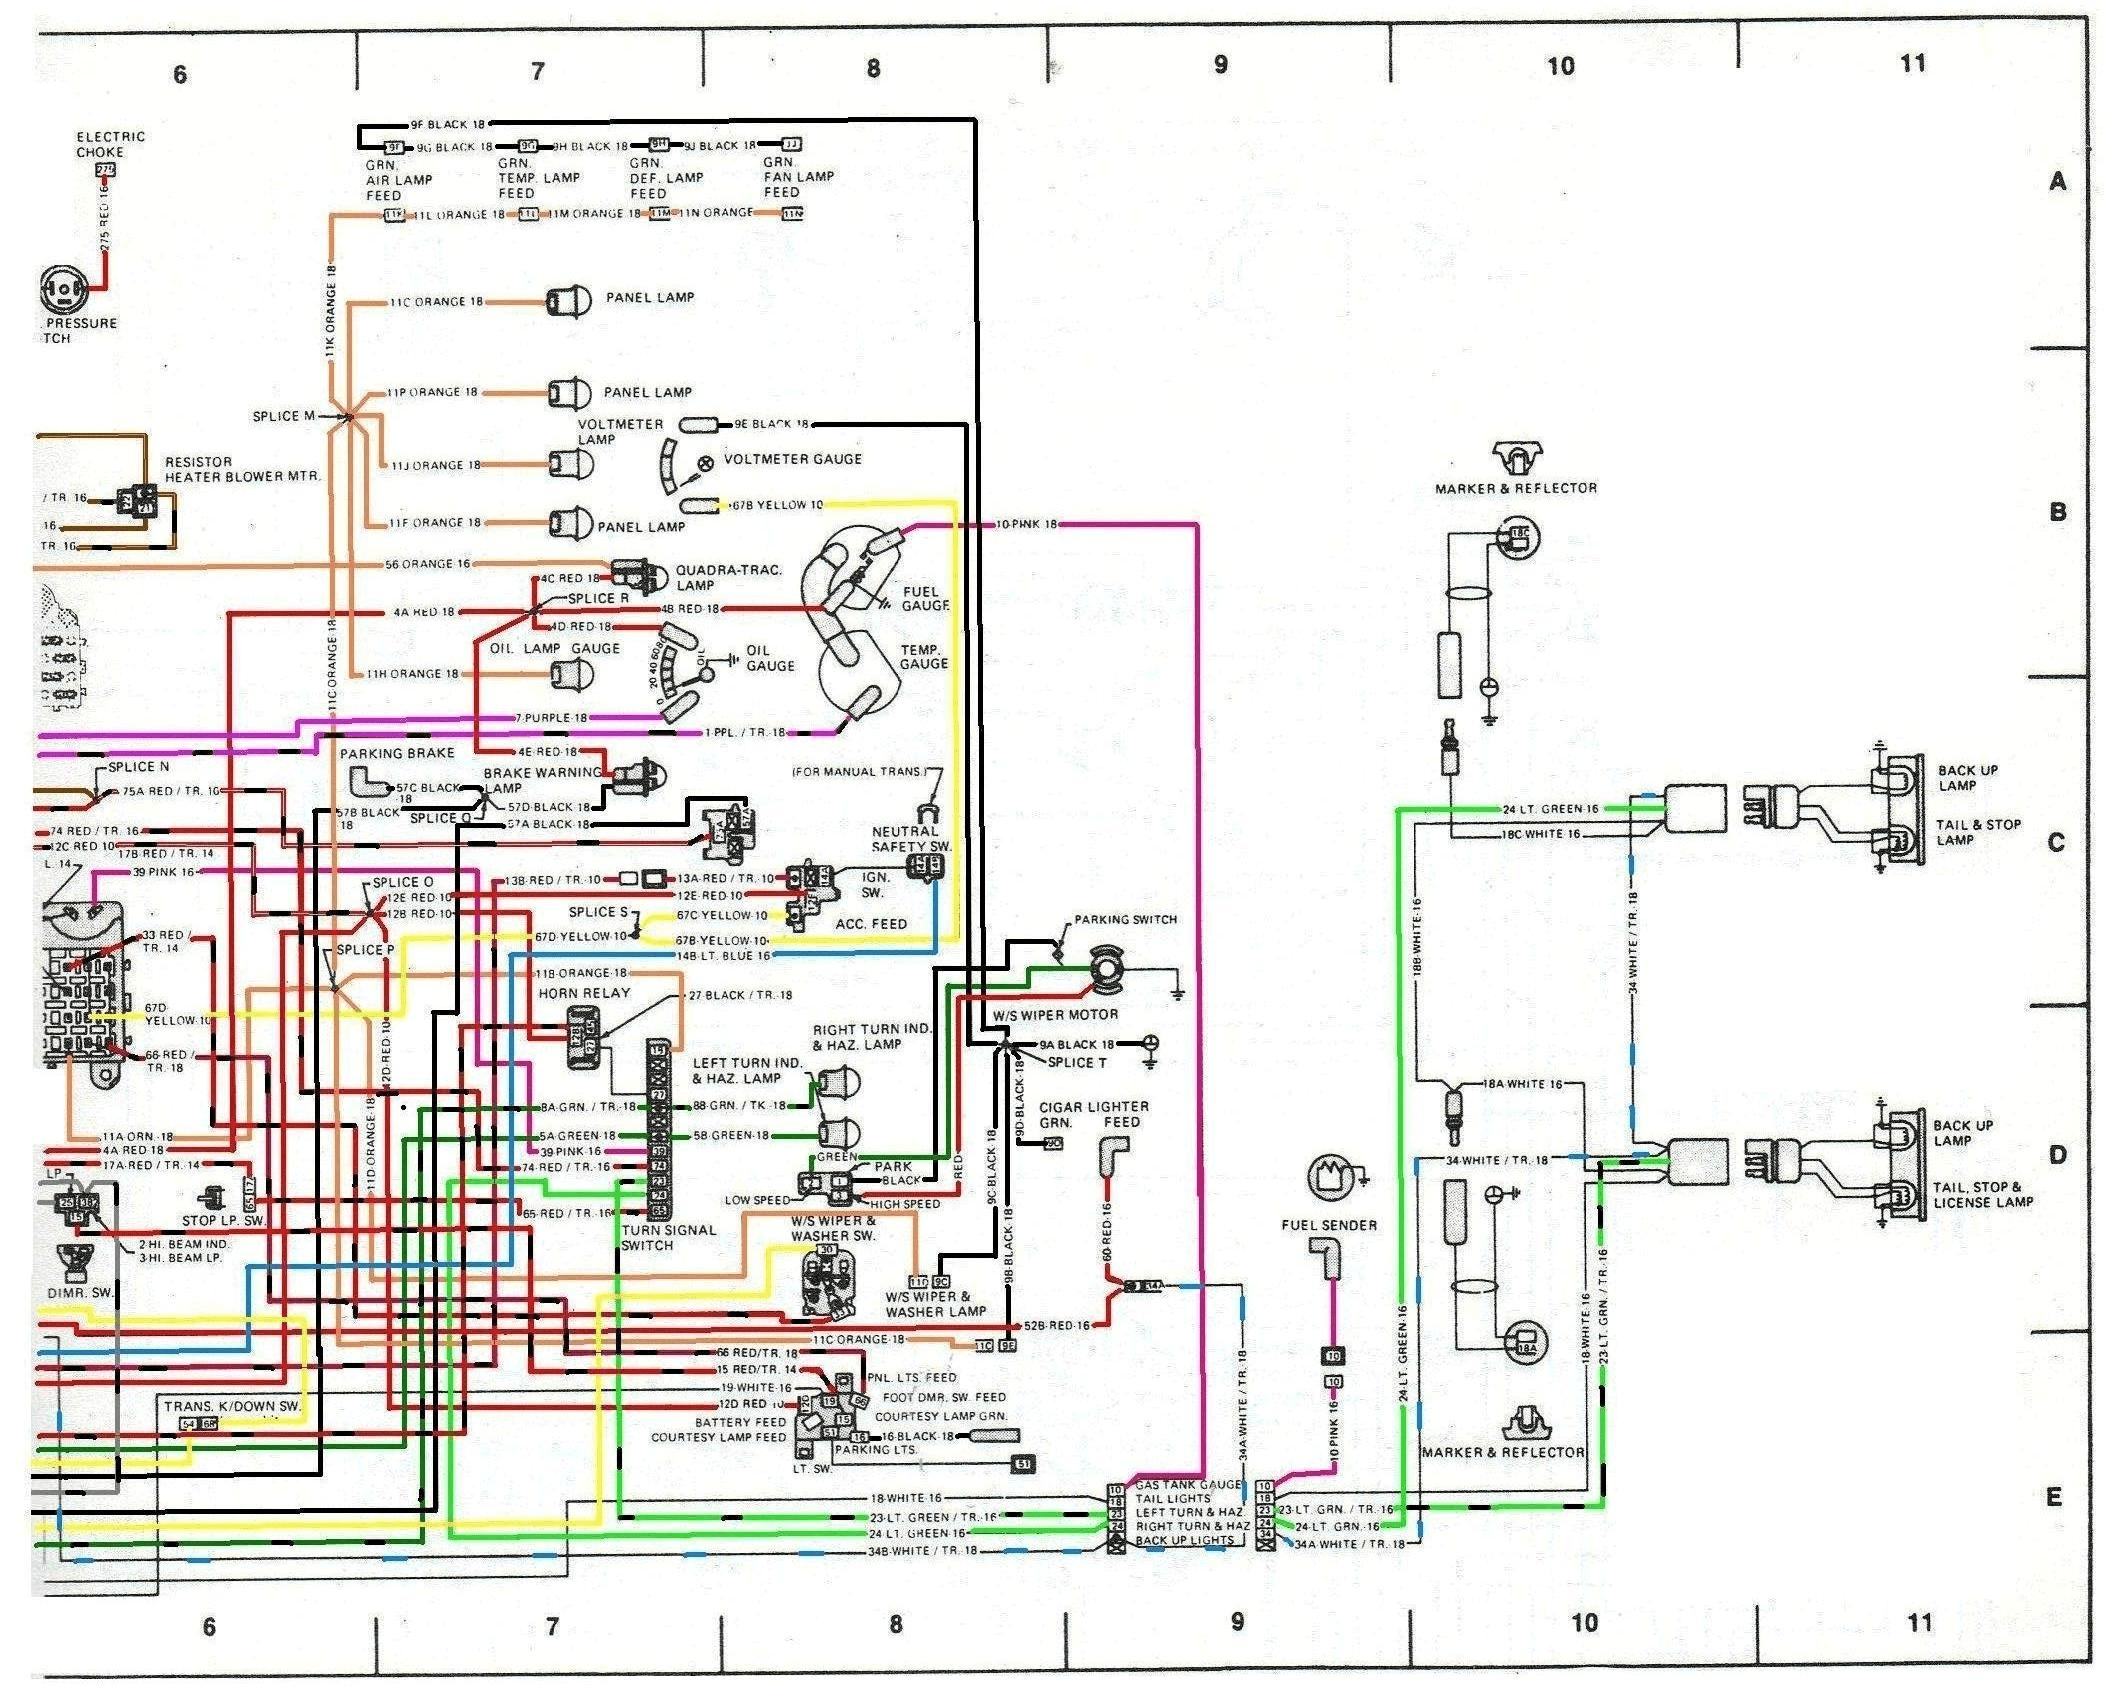 79 jeep wiring diagram compact wiring diagram saturn wire diagram 76 jeep wire diagram [ 2120 x 1700 Pixel ]